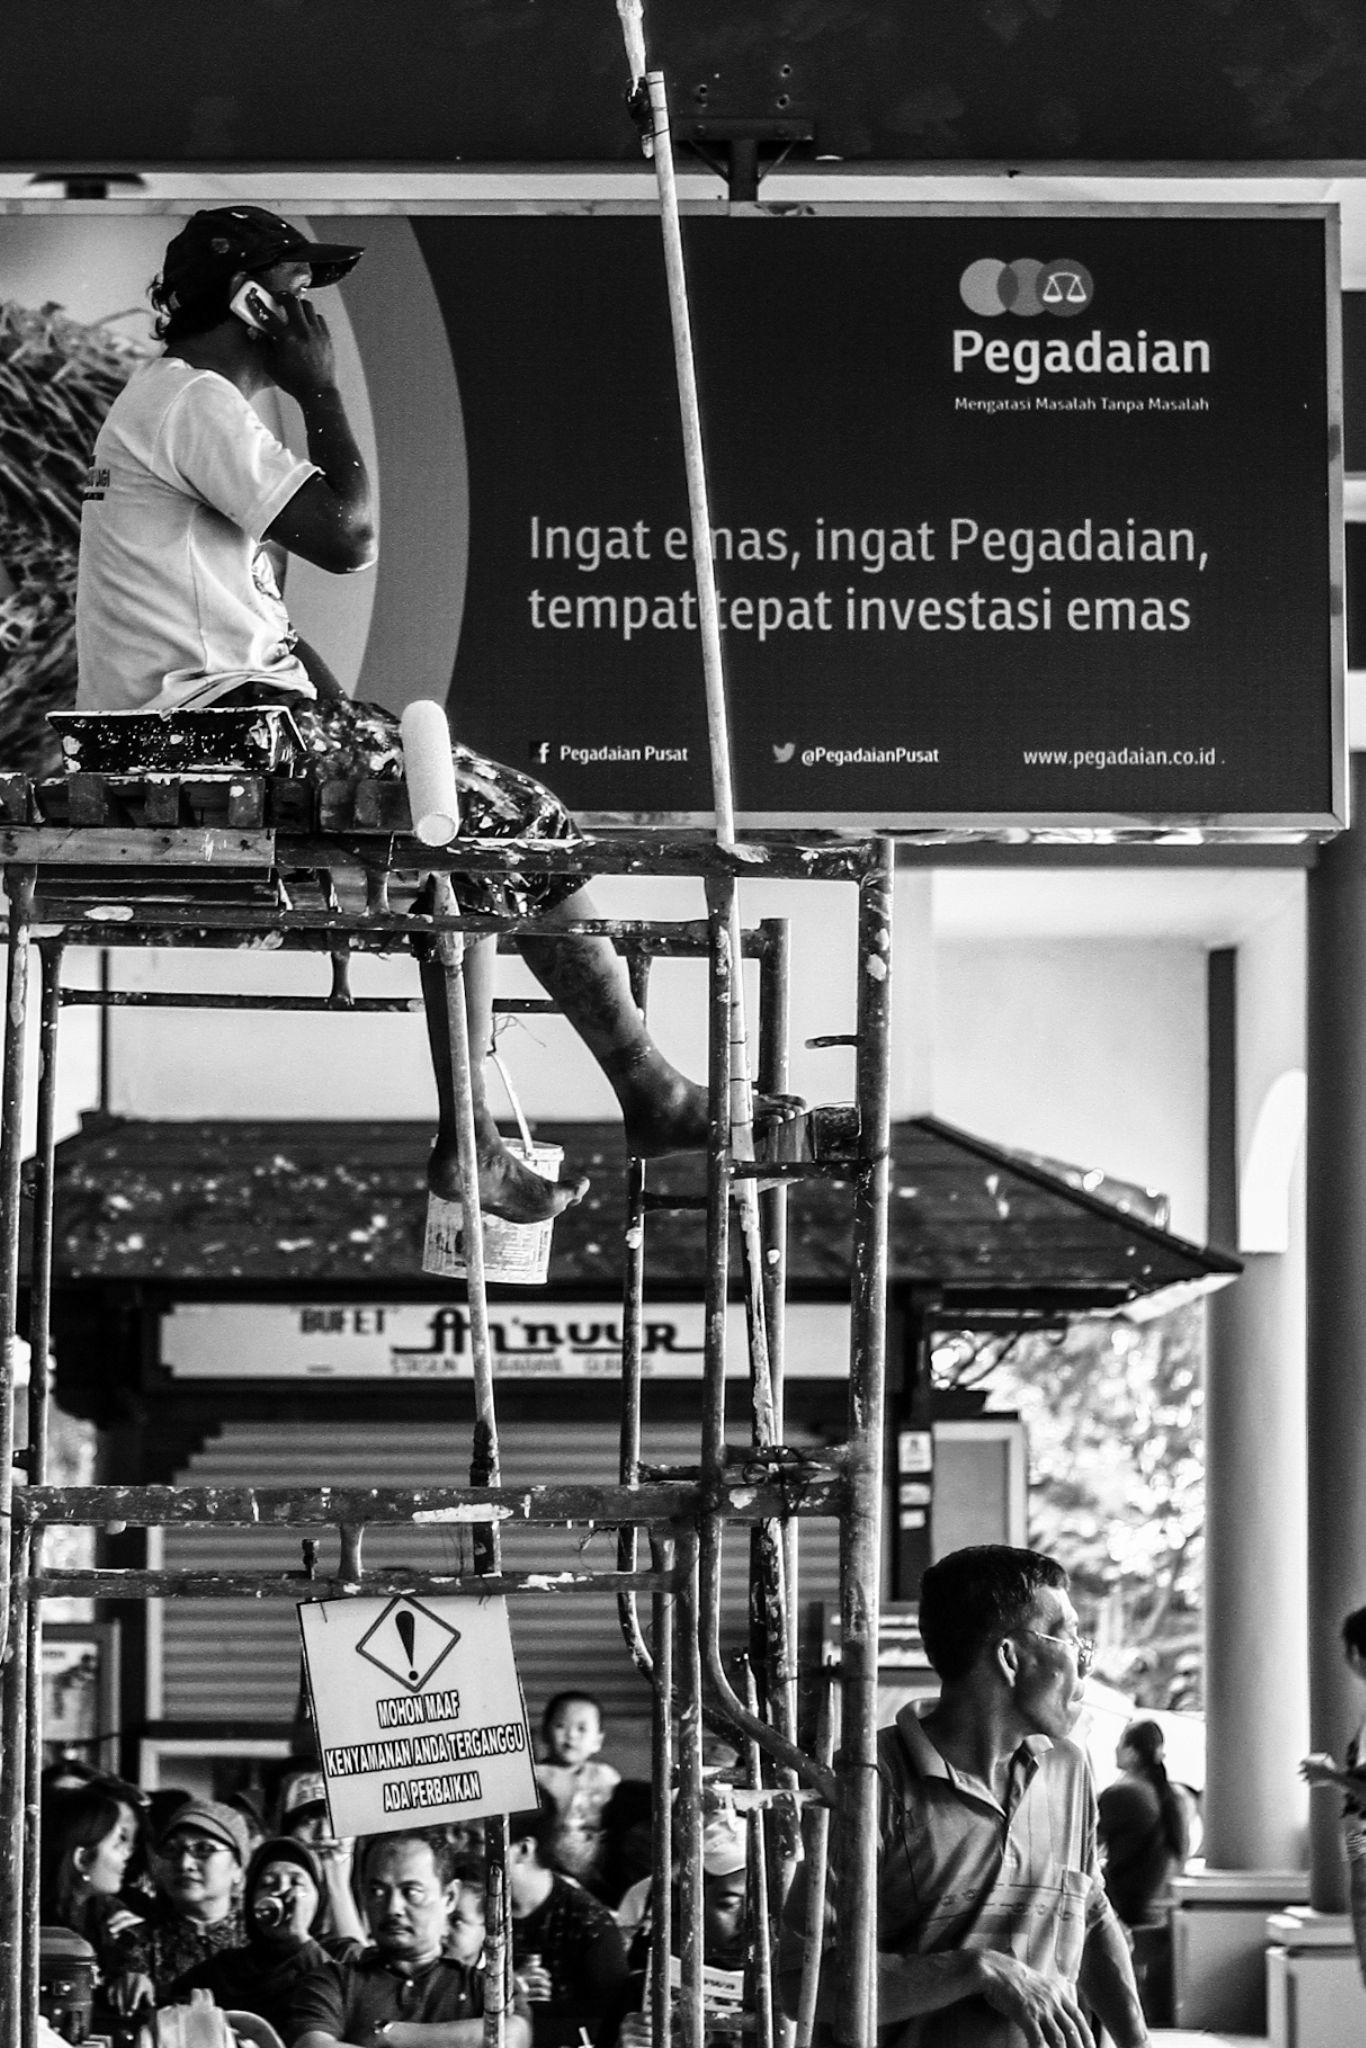 IndonesiaOnTheStreet #22 by Jo Simson